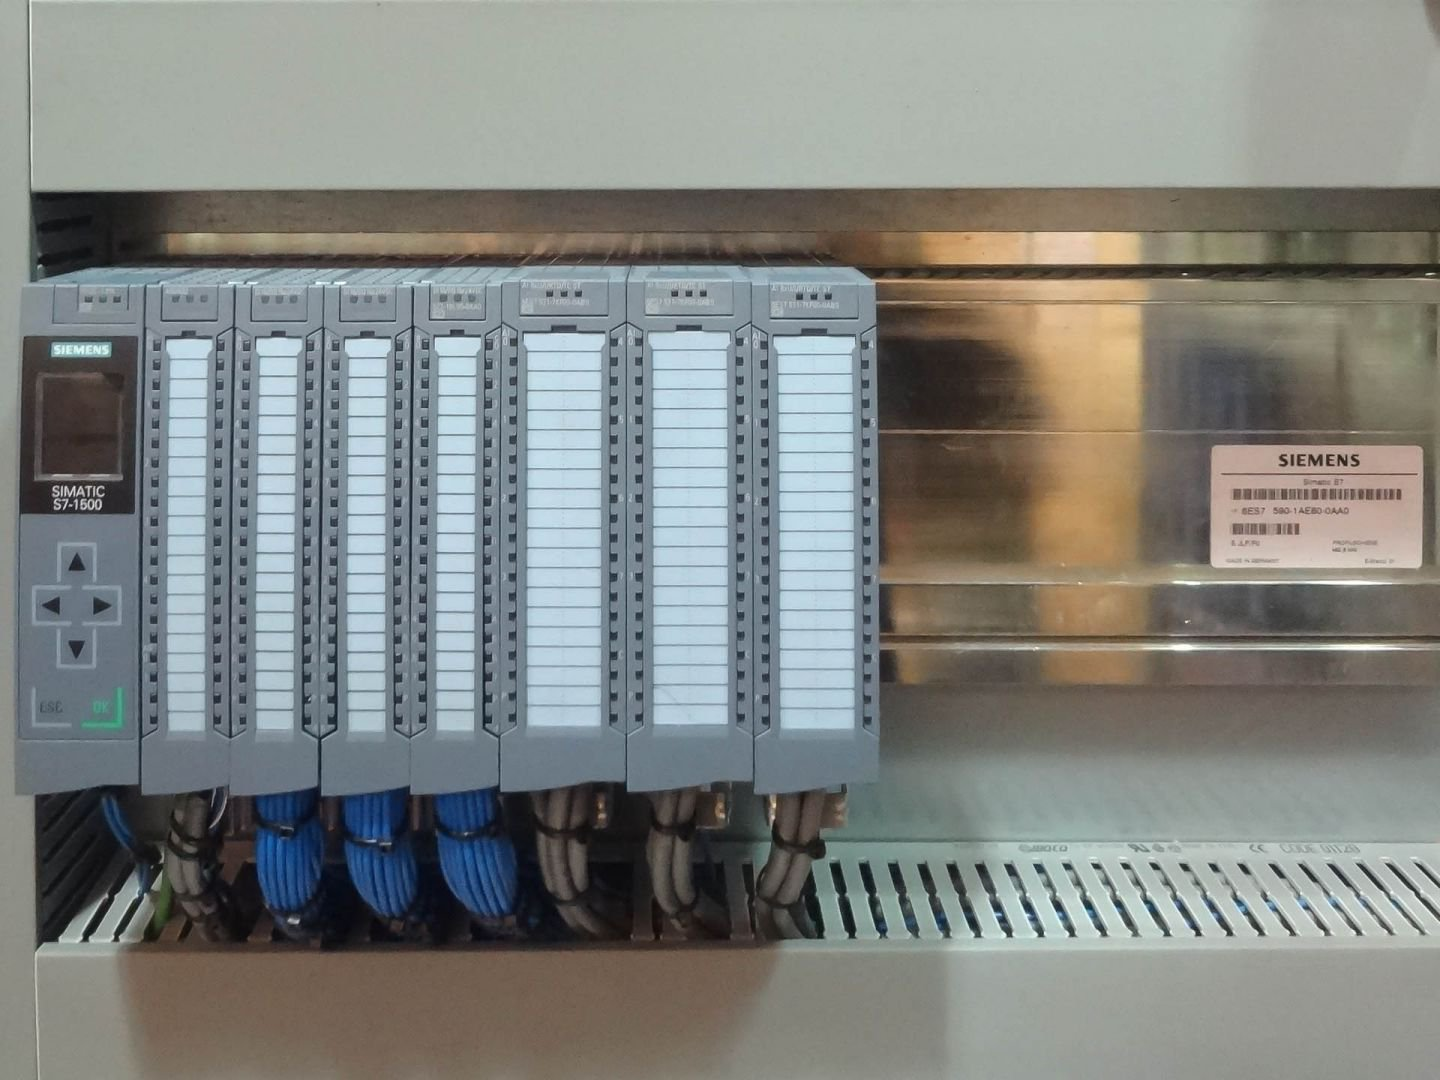 Find out more about how Axis Controls can integrate a Siemens PLC system